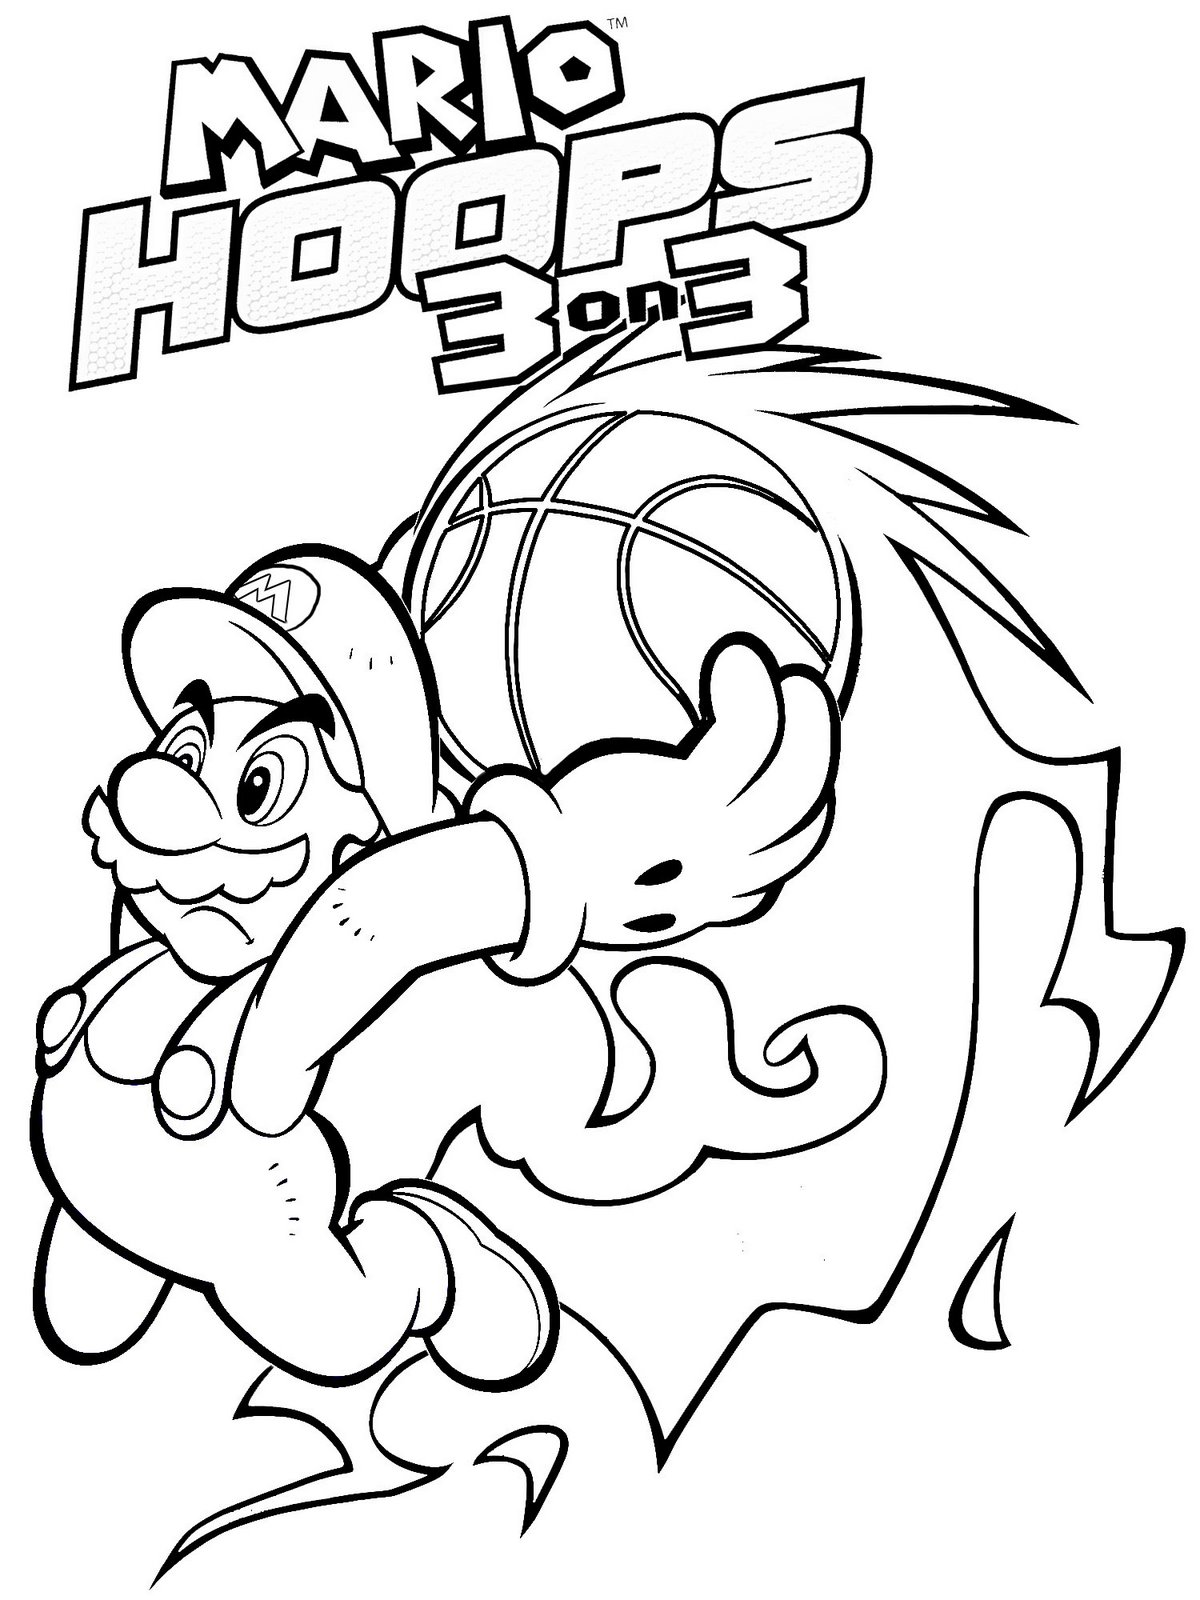 mario bro yoshi coloring pages - photo#30